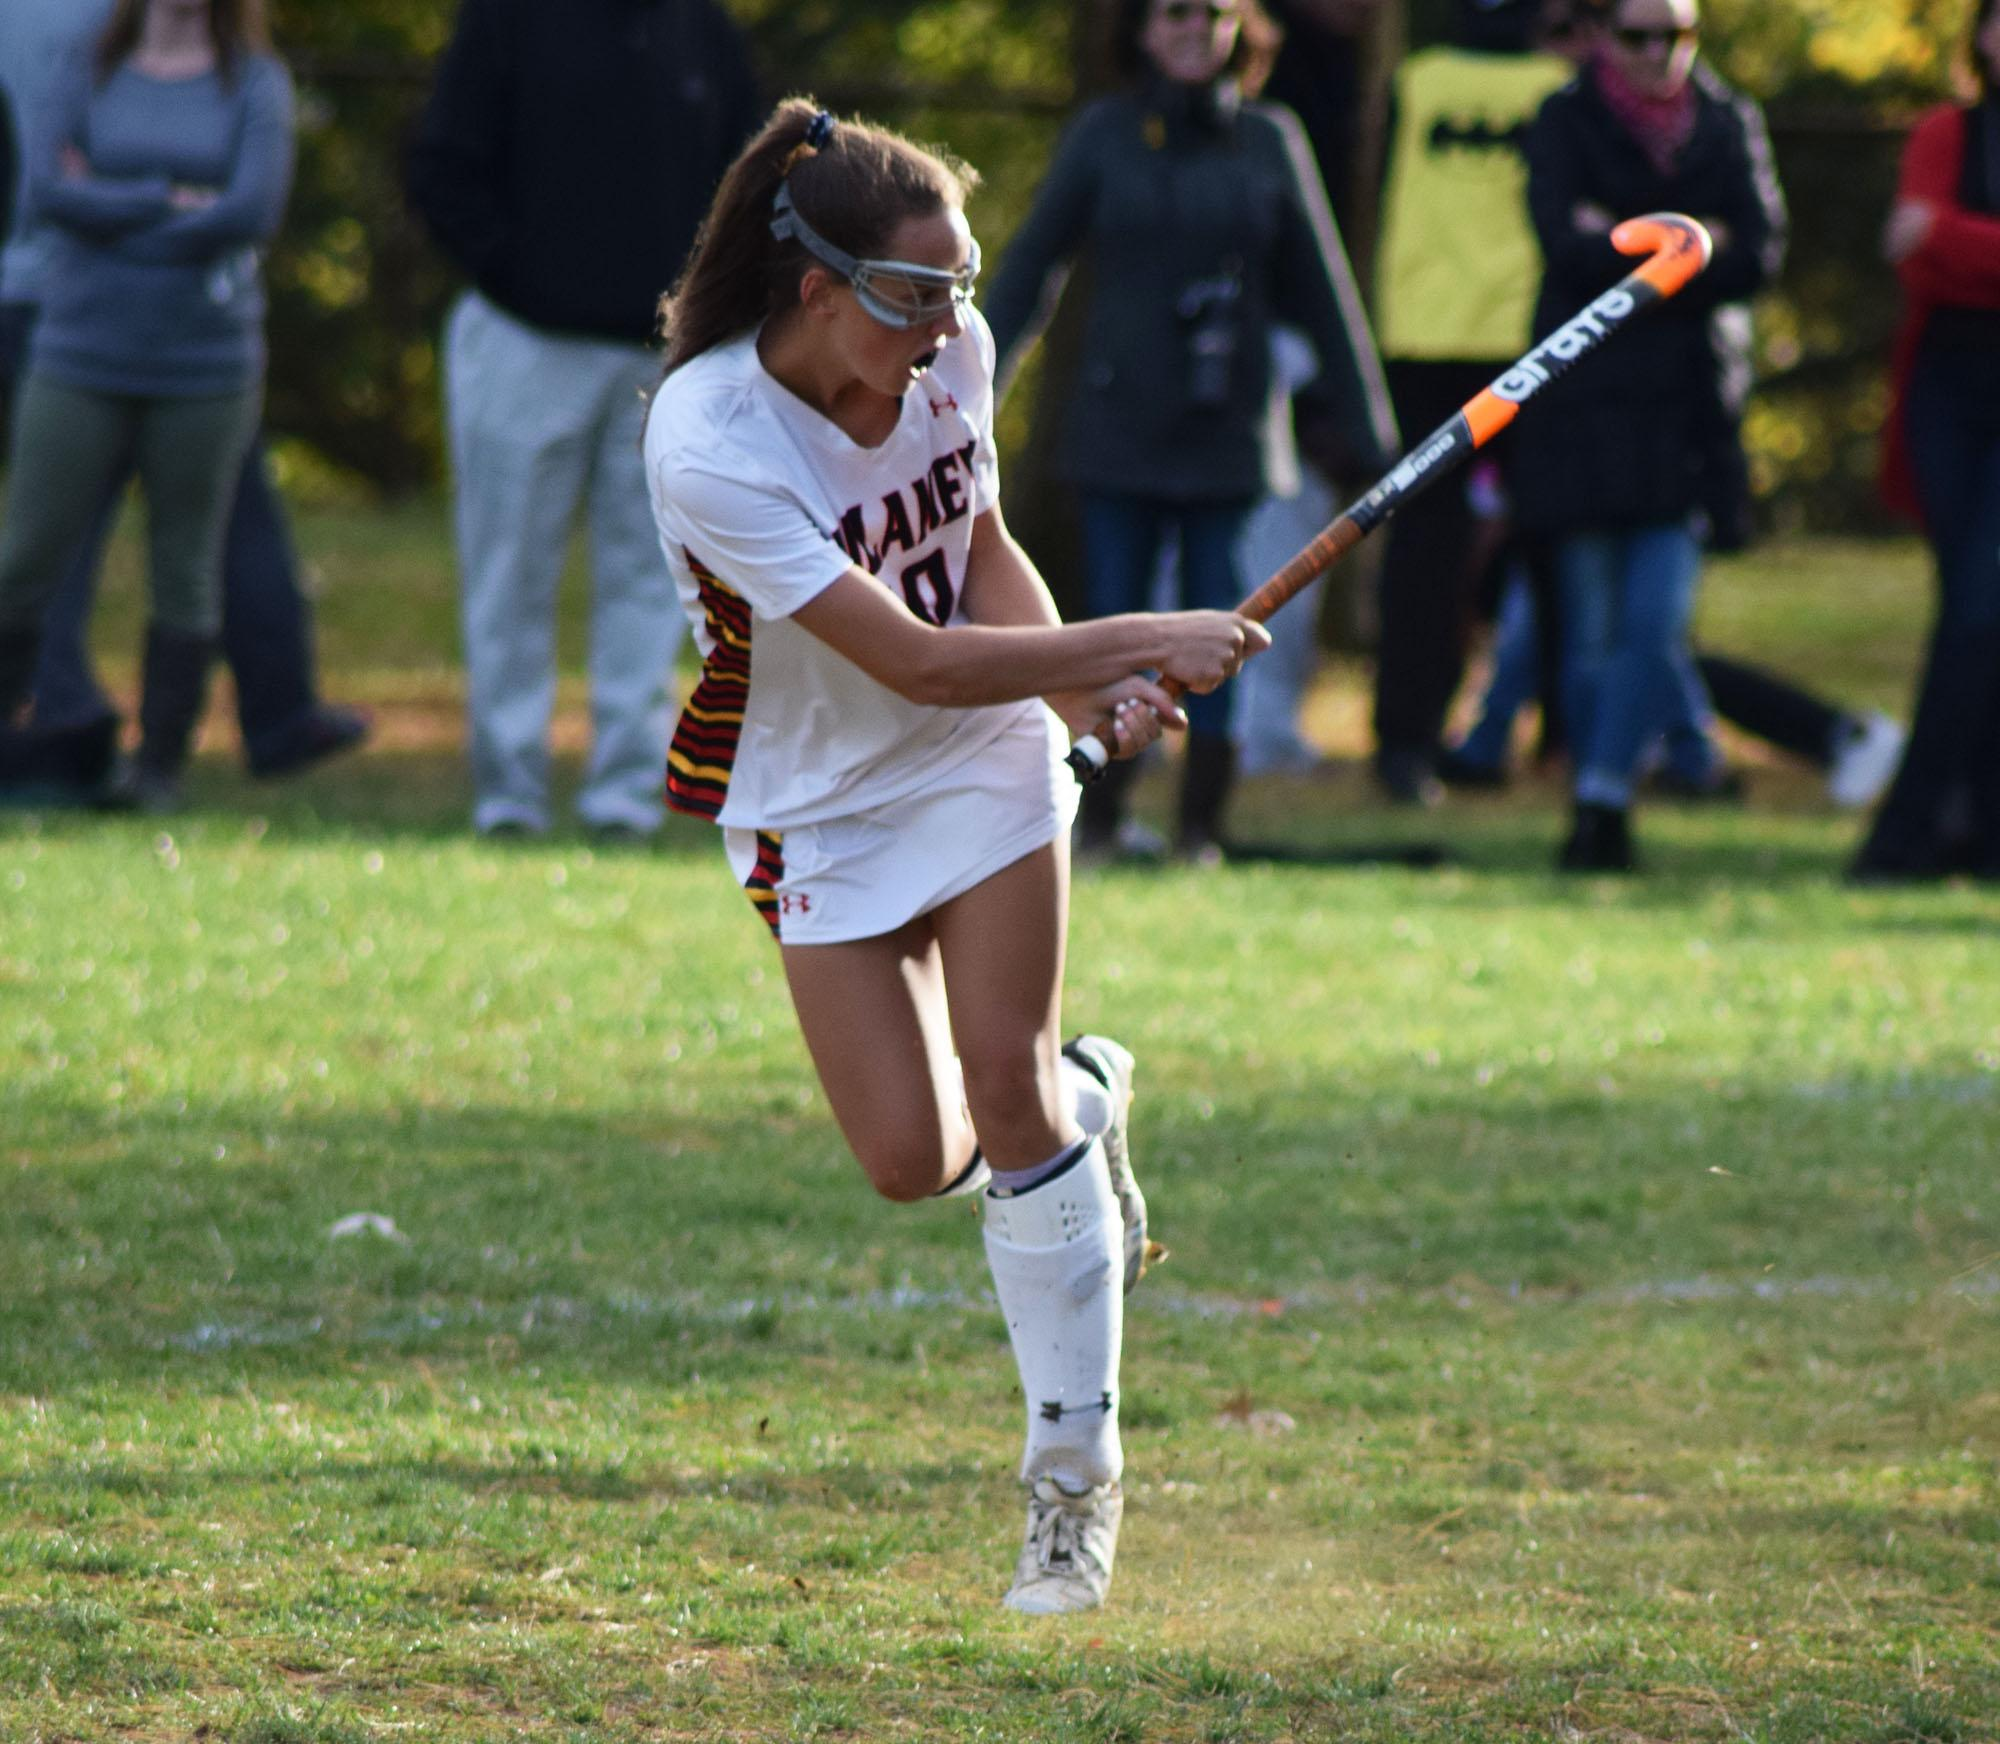 Junior+midfielder+Maggie+Kelly+goes+for+a+hit+in+the+MPSSAA++regional+semifinal+game+Oct.+31.+The+team+went+on+to+win+3-1+against+Catonsville.+